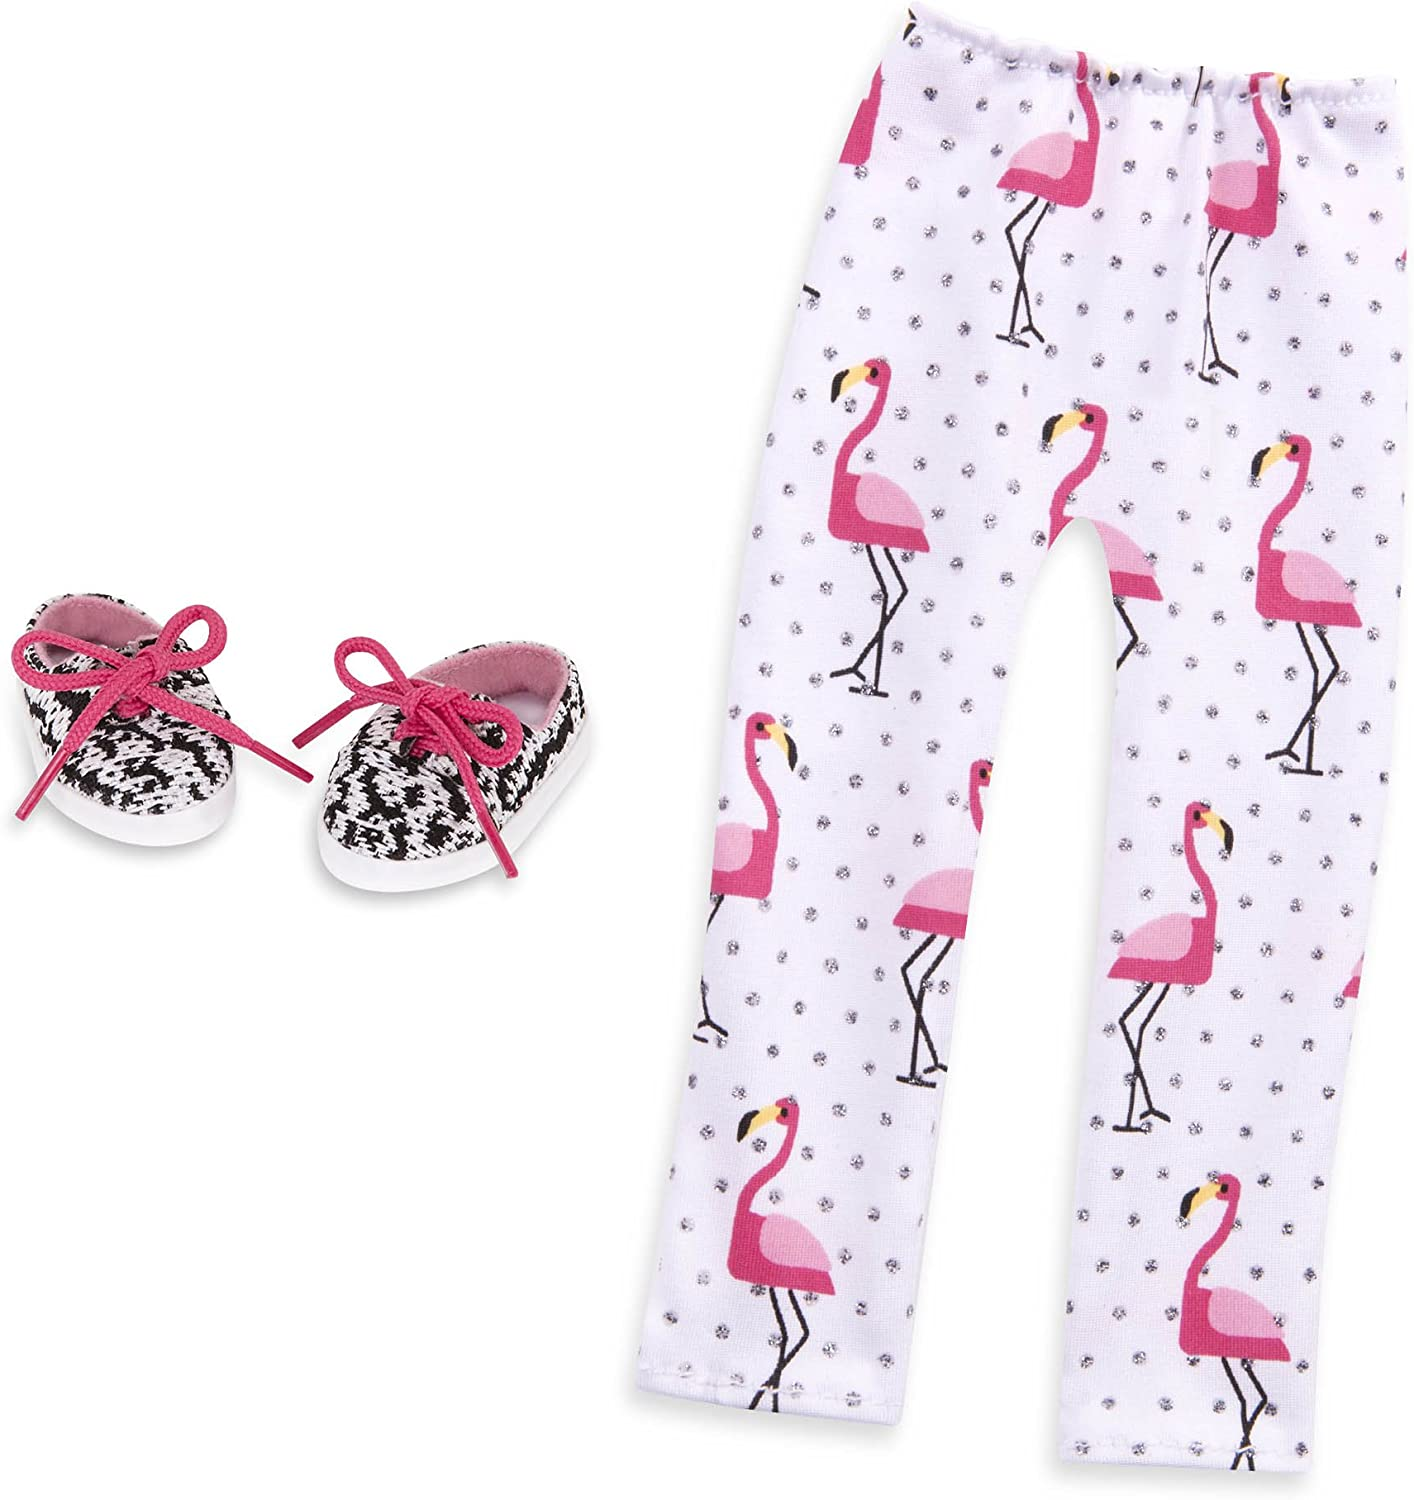 14-inch Doll Clothes and Accessories for Girls Age 3 and Up Shoes and Leggings Accessory Set Children/'s Toys Flamingo Glow Glitter Girls by Battat